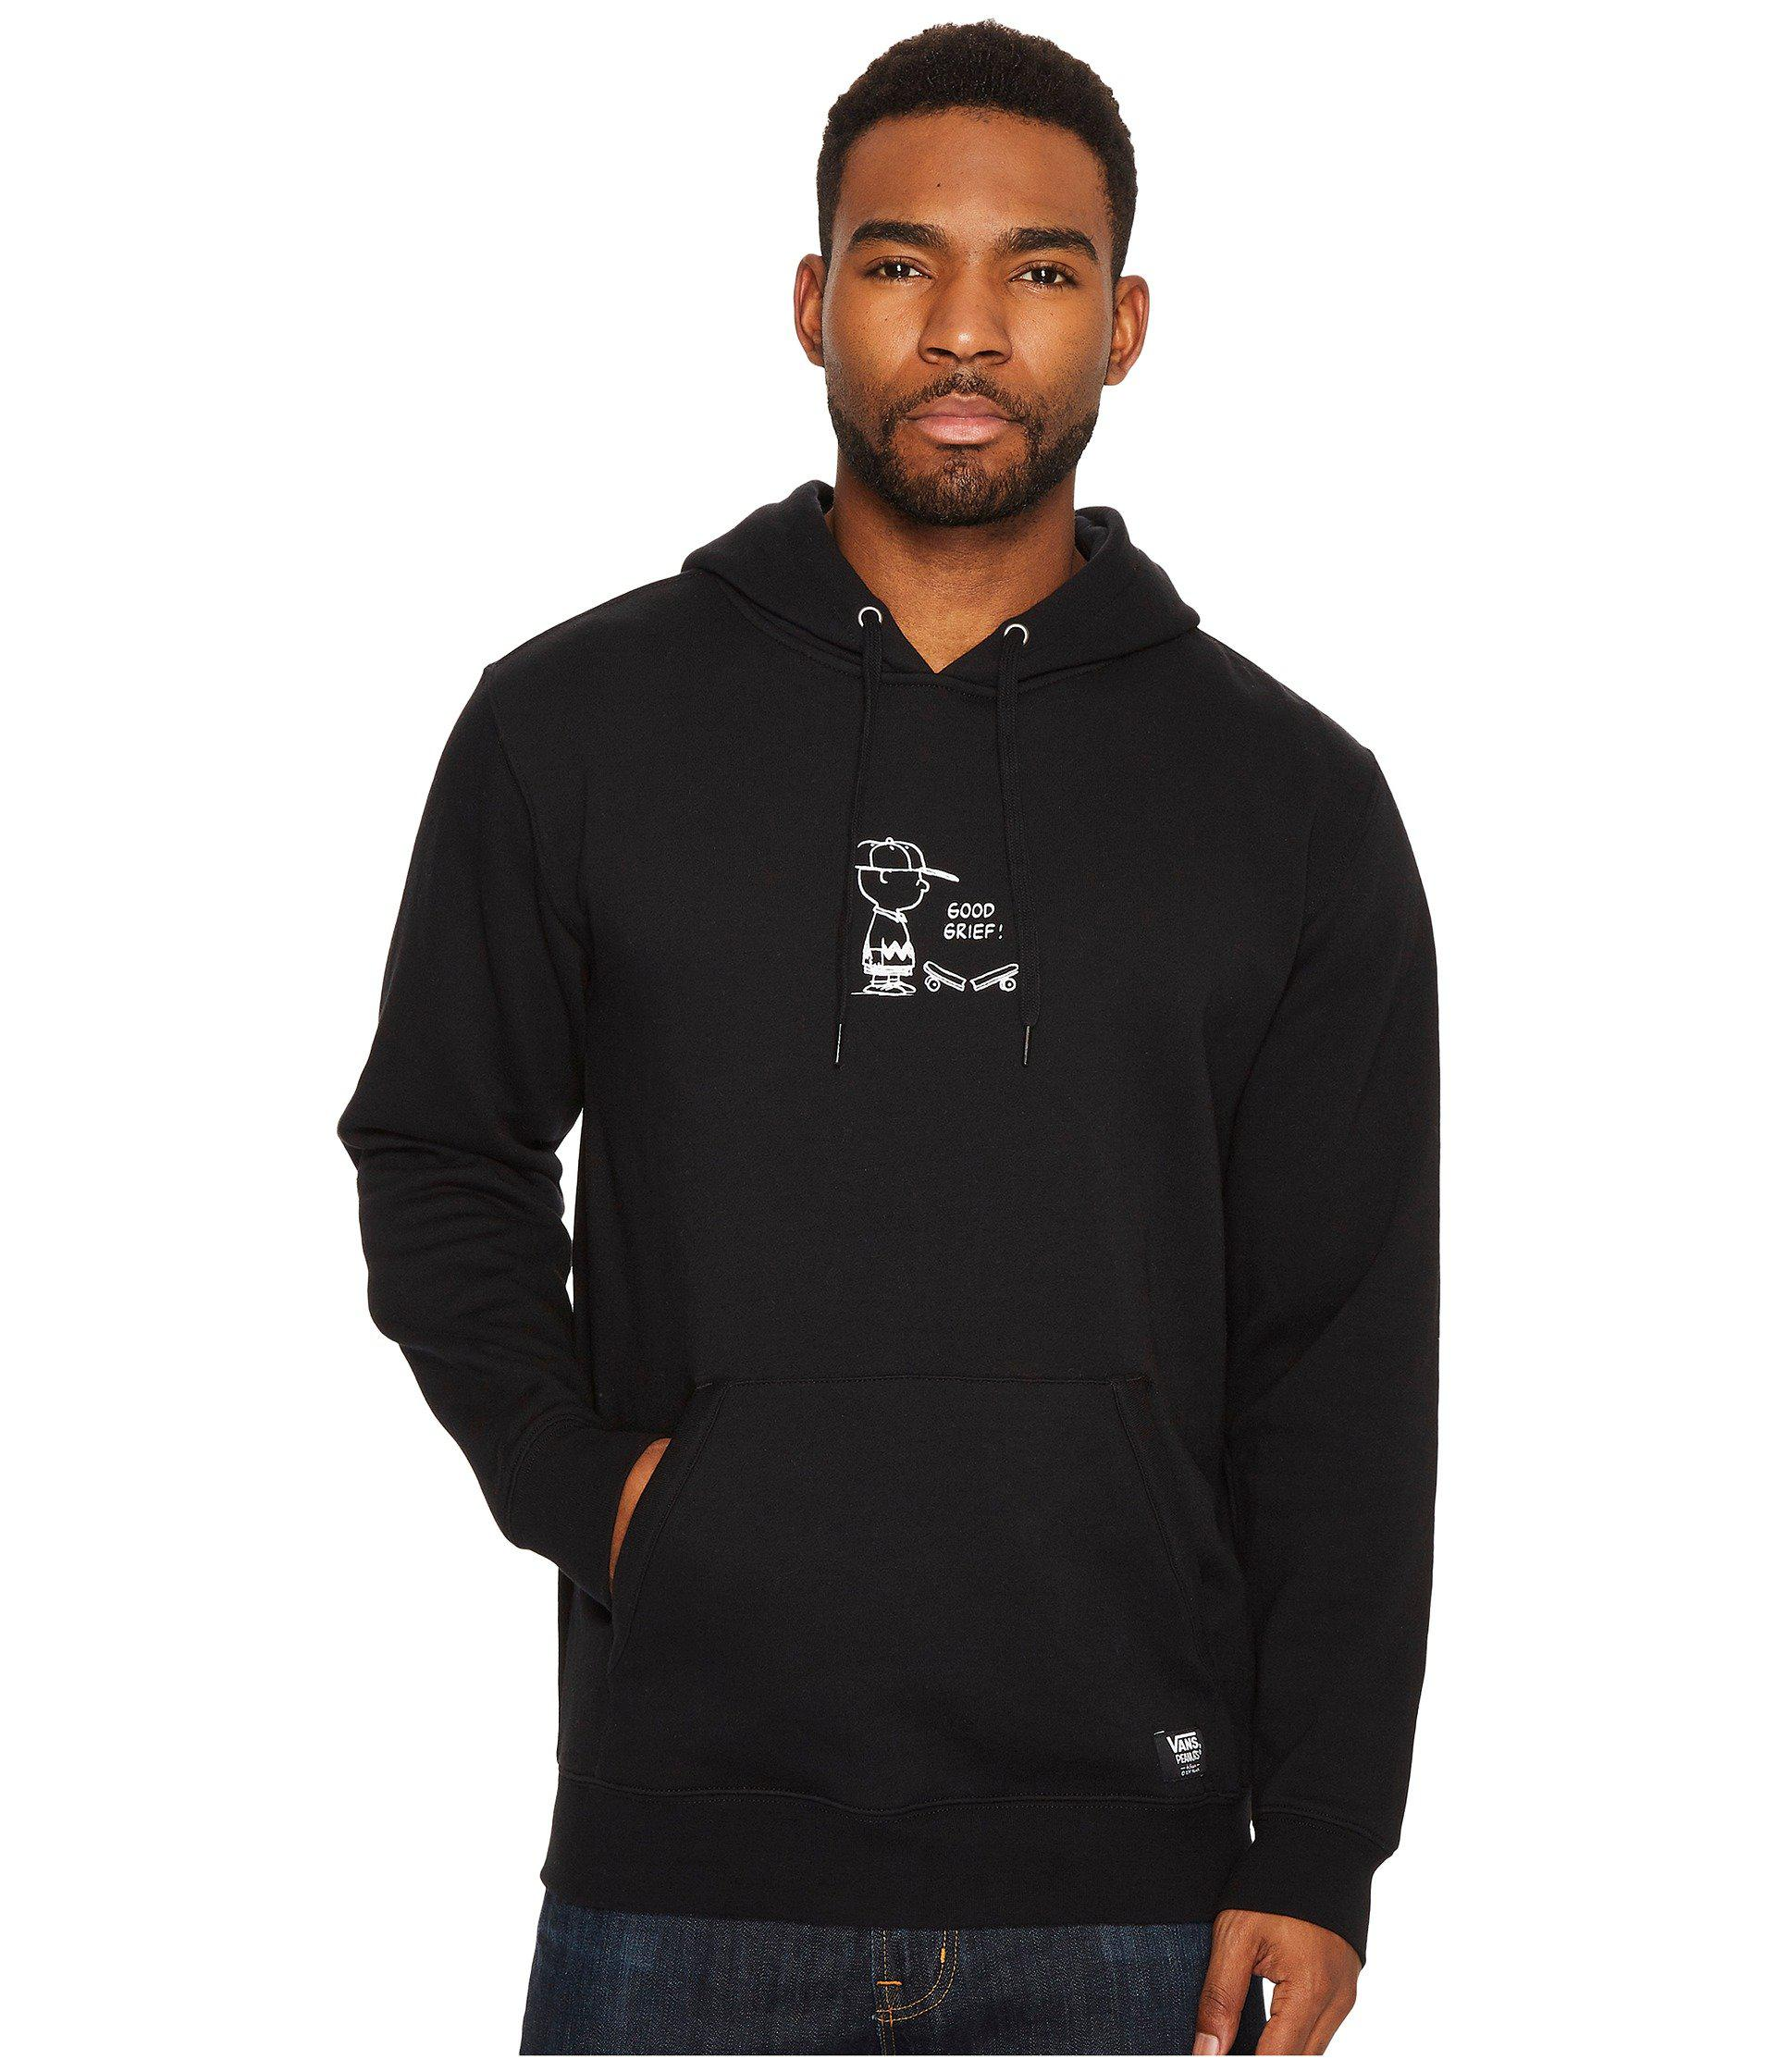 f4298069e38 Lyst - Vans X Peanuts Good Grief Pullover Hoodie in Black for Men